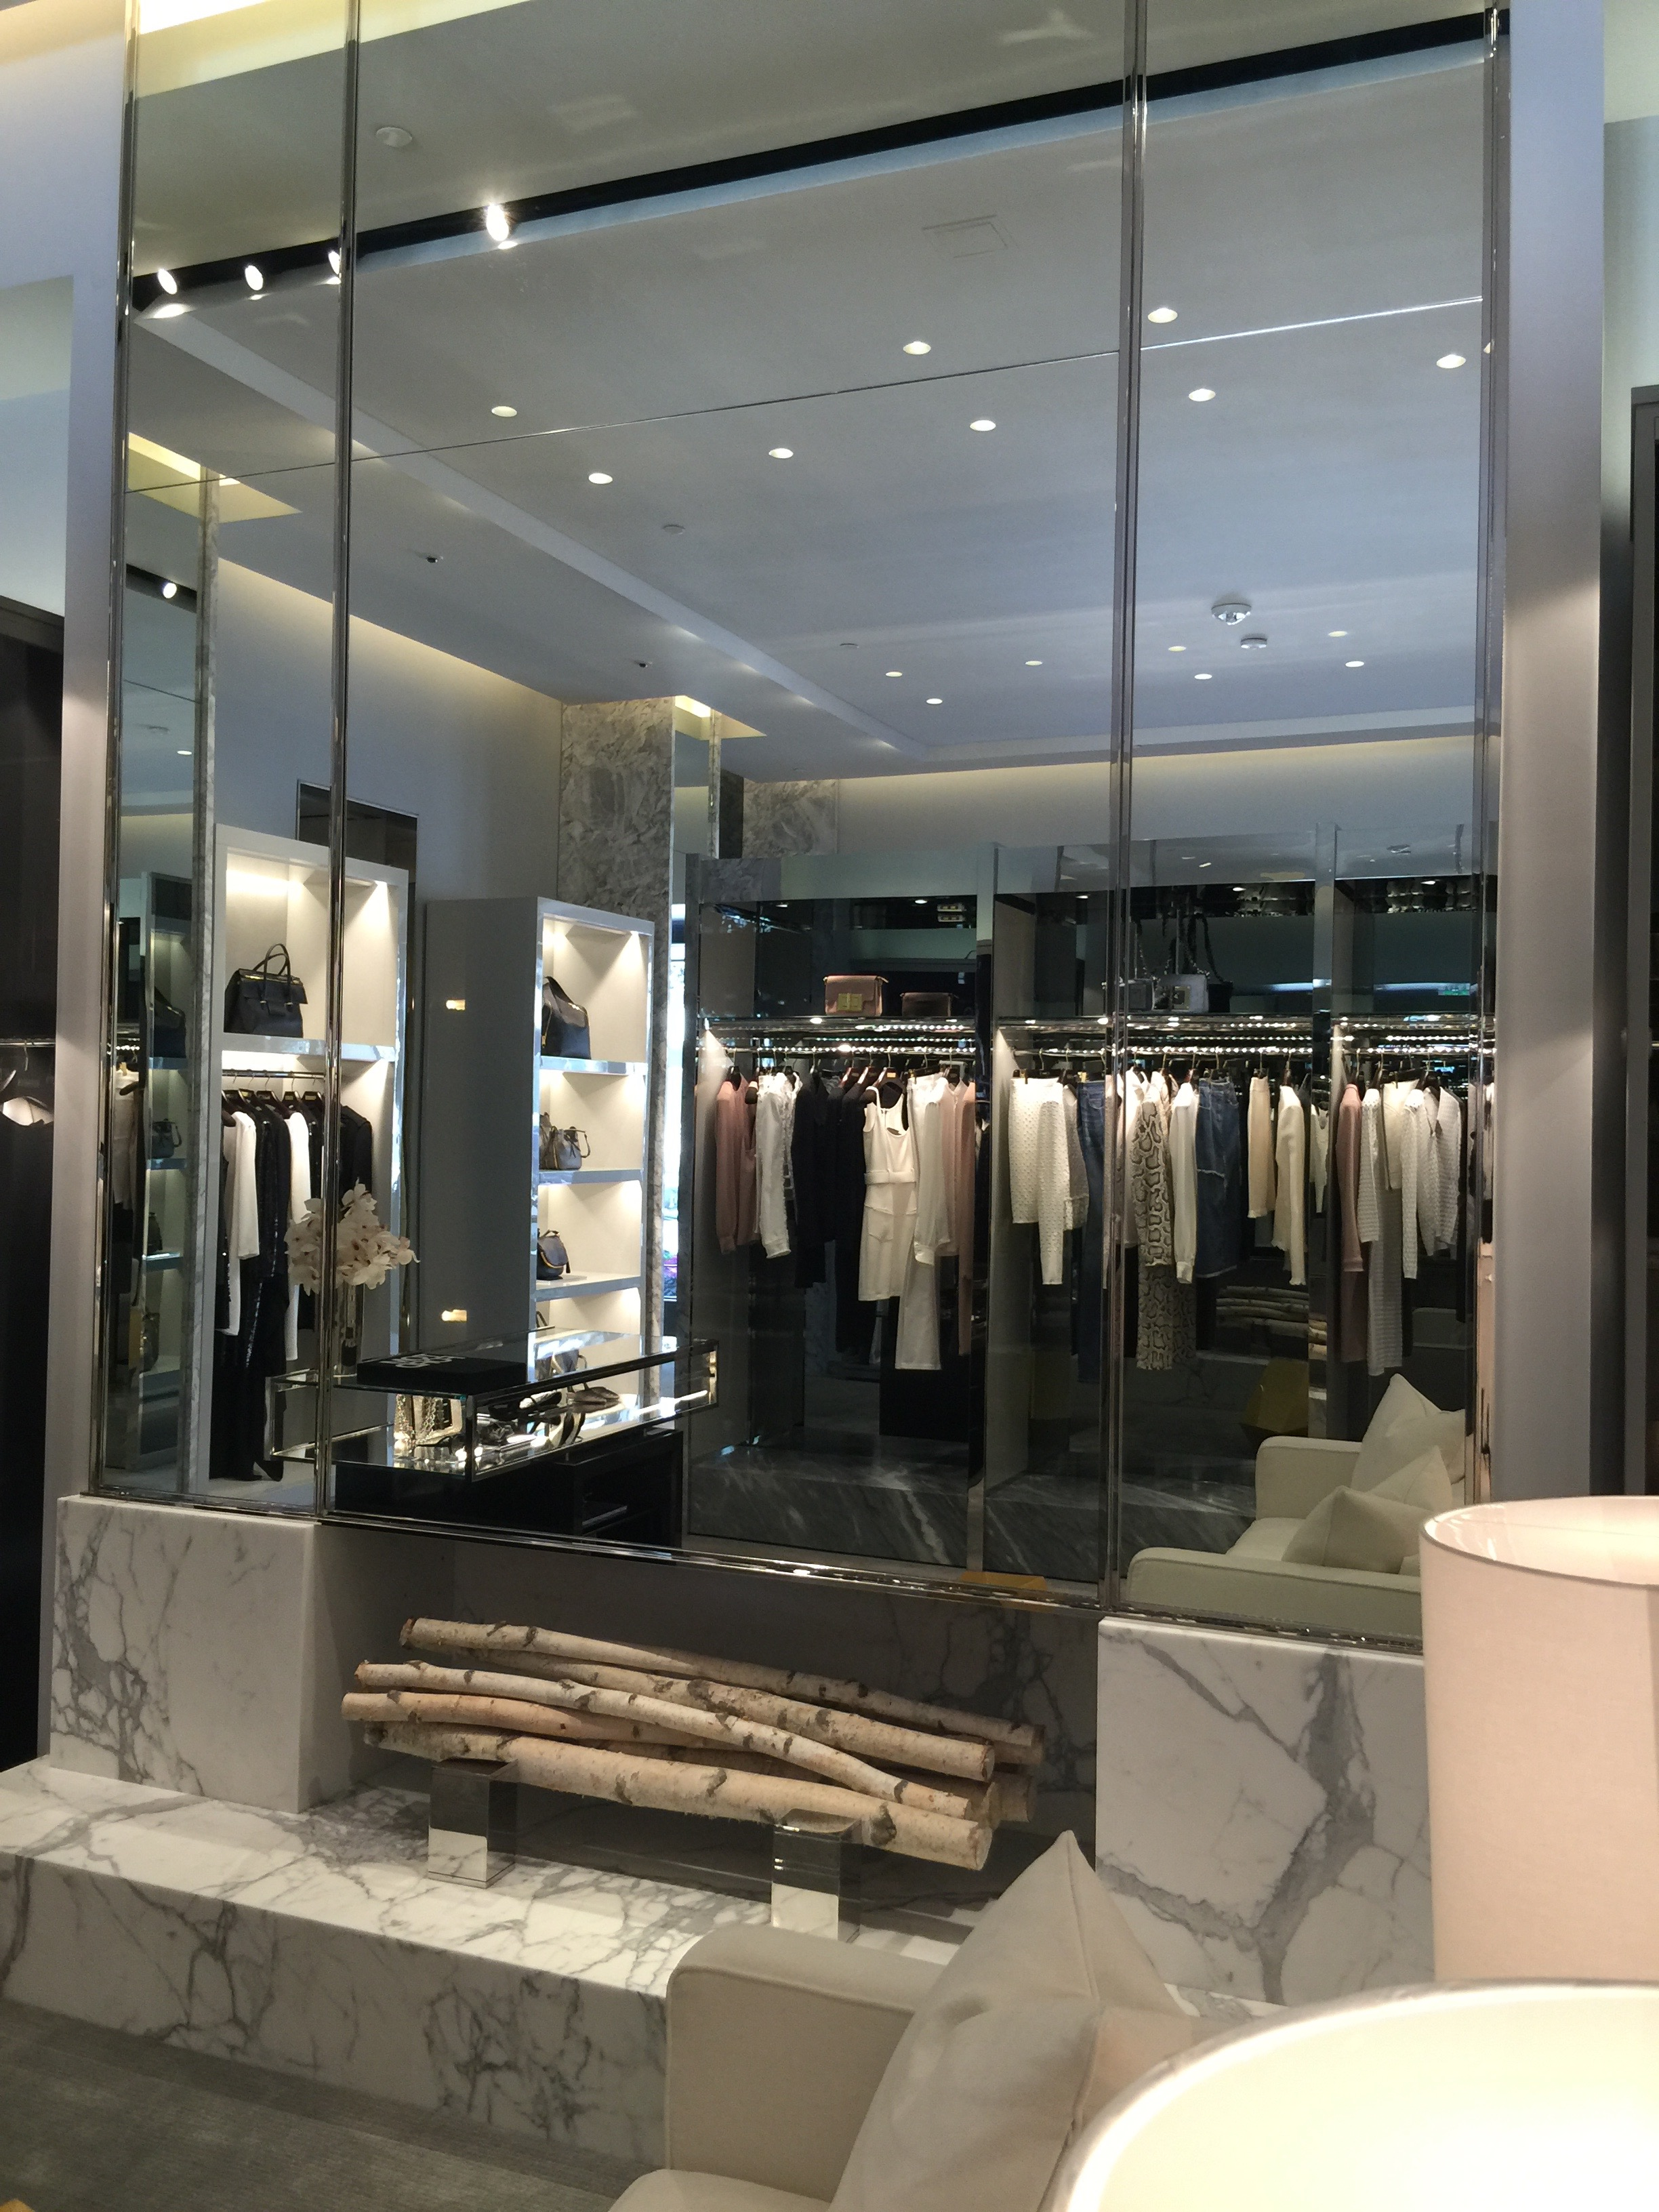 The new Tom Ford Boutique in Bulkhead